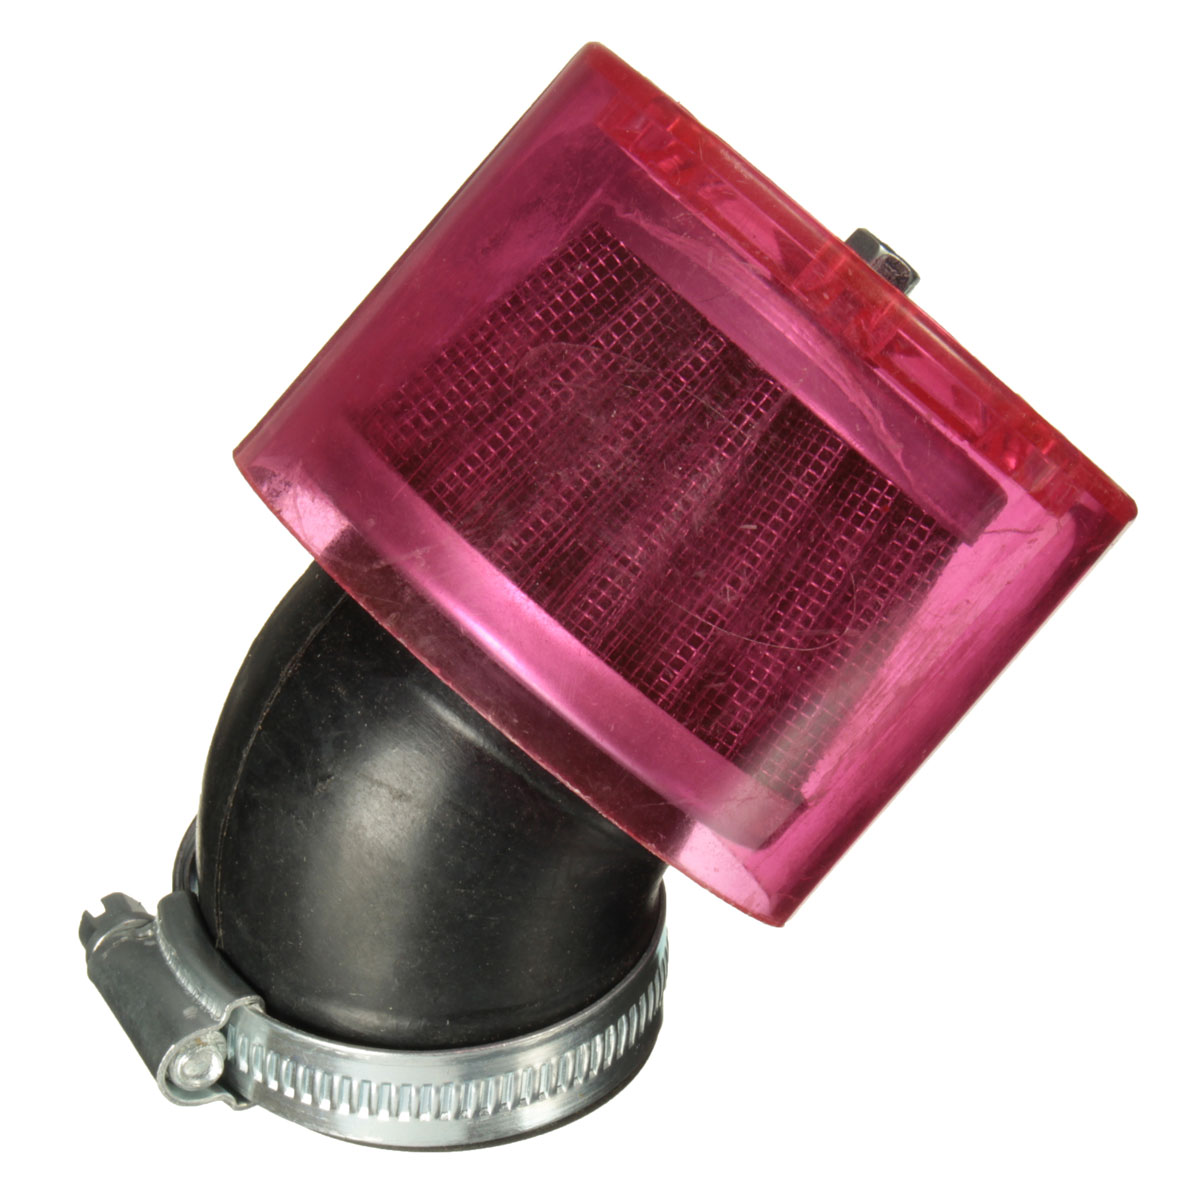 Cover For Honda/kawasaki/suzuki Engines Responsible Red 45 Degree 42mm Atv Dirt Bike Air Filter Cleaner 125cc 140cc 150cc 4-stroke Bikes Back To Search Resultsautomobiles & Motorcycles